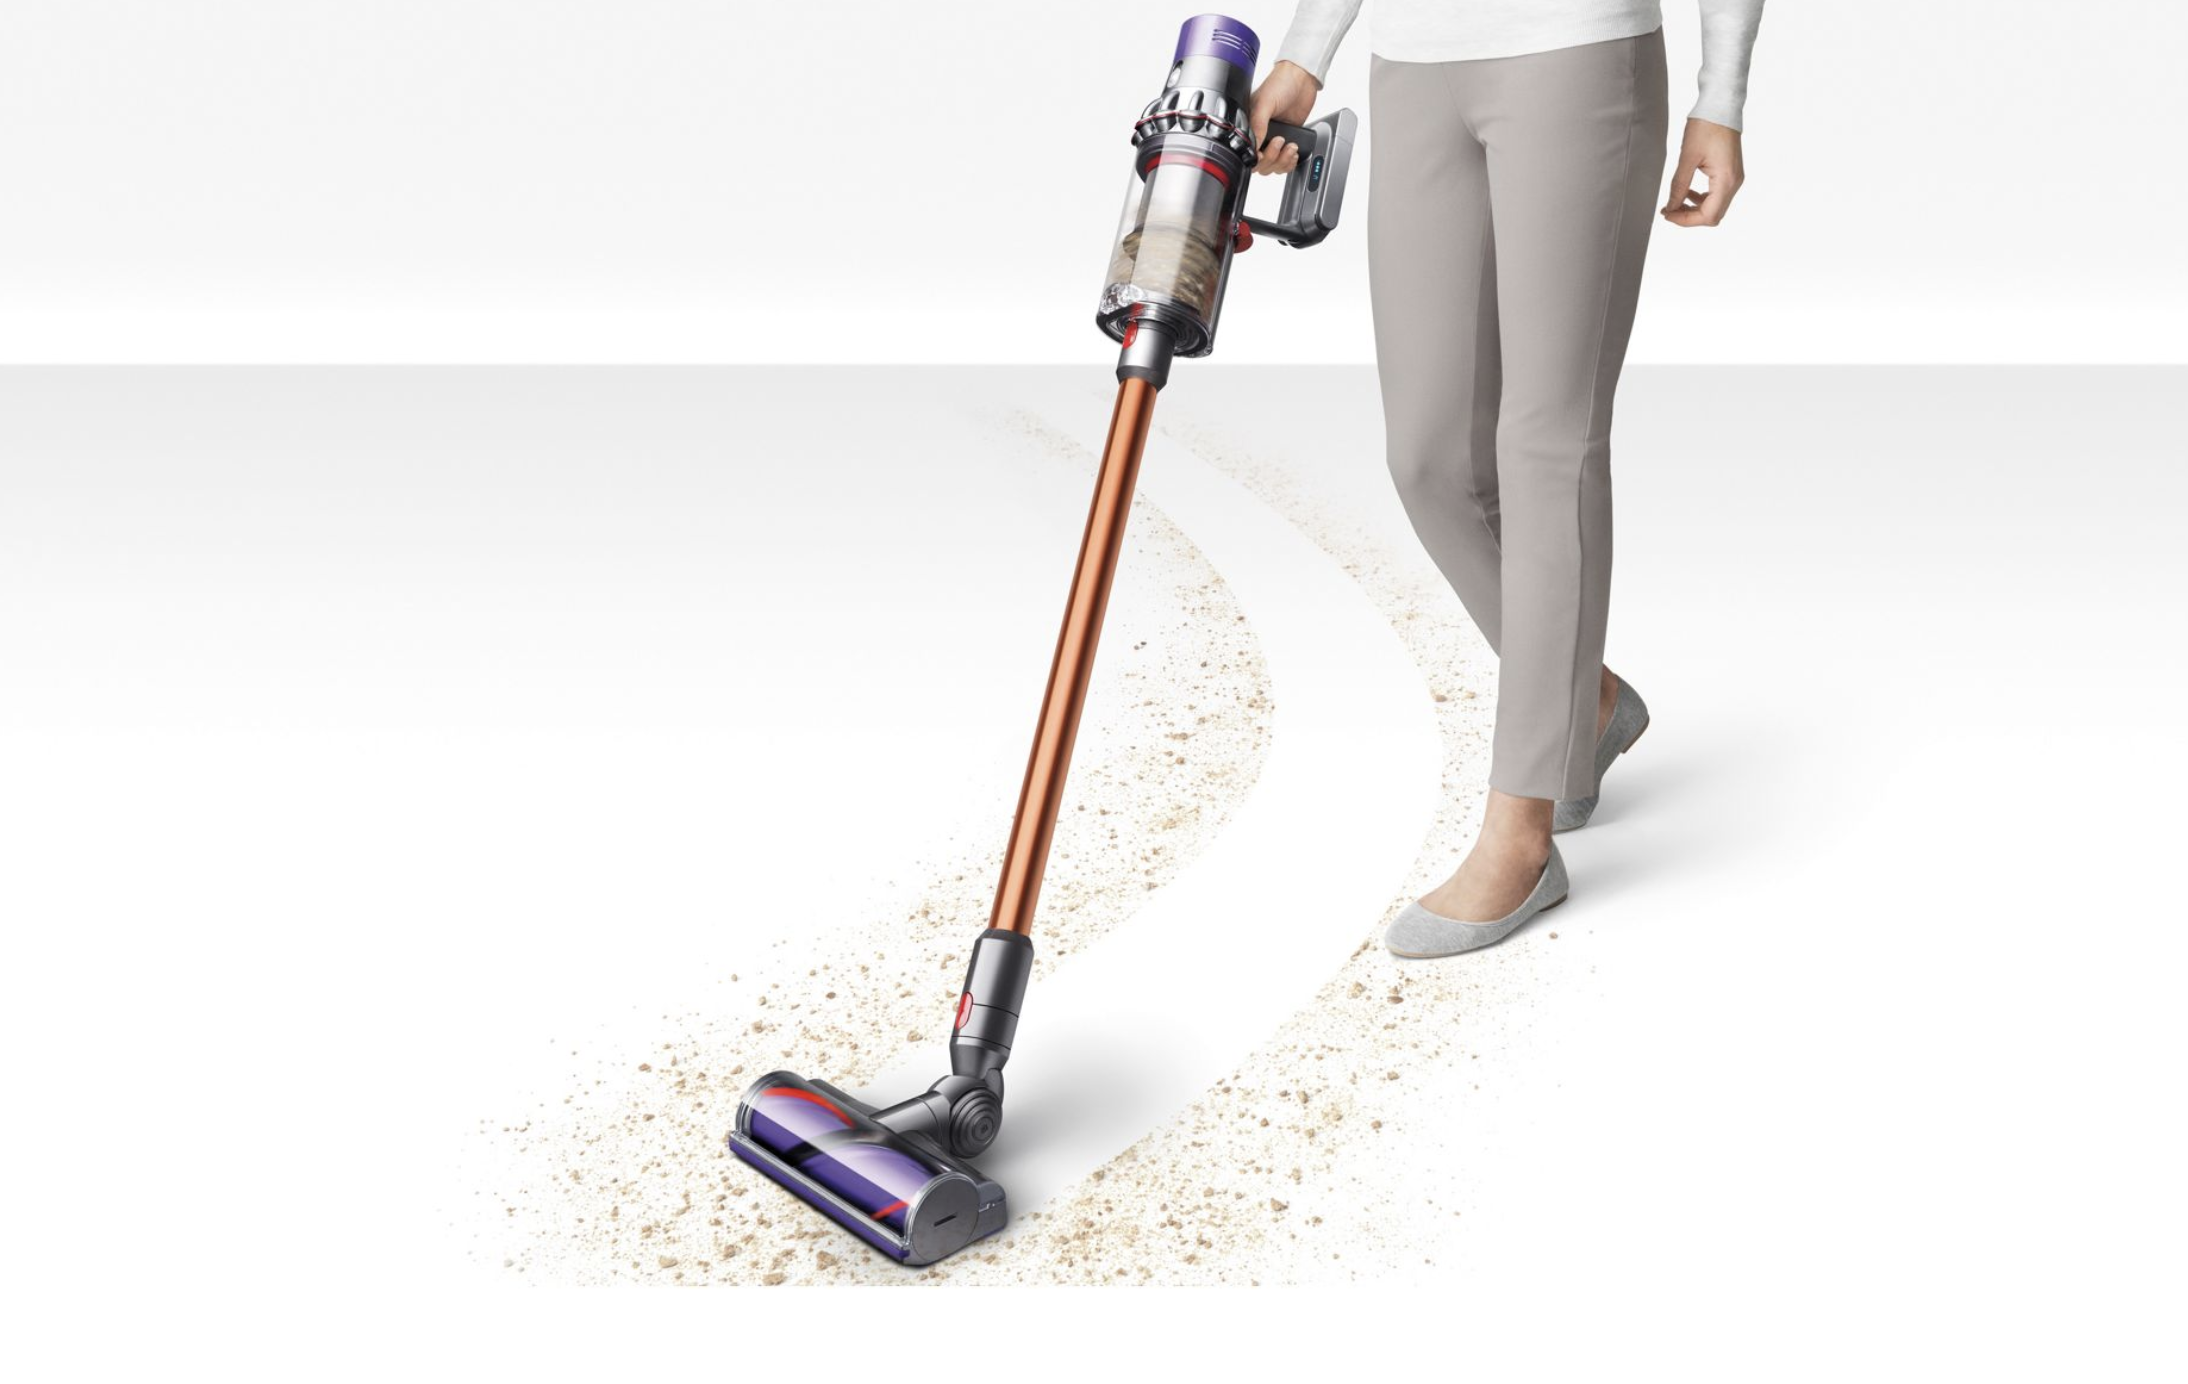 da4f8d5be82 Deal alert  Dyson s top-rated cordless vacuum is on sale on Amazon right  now 🙌 - Motherly